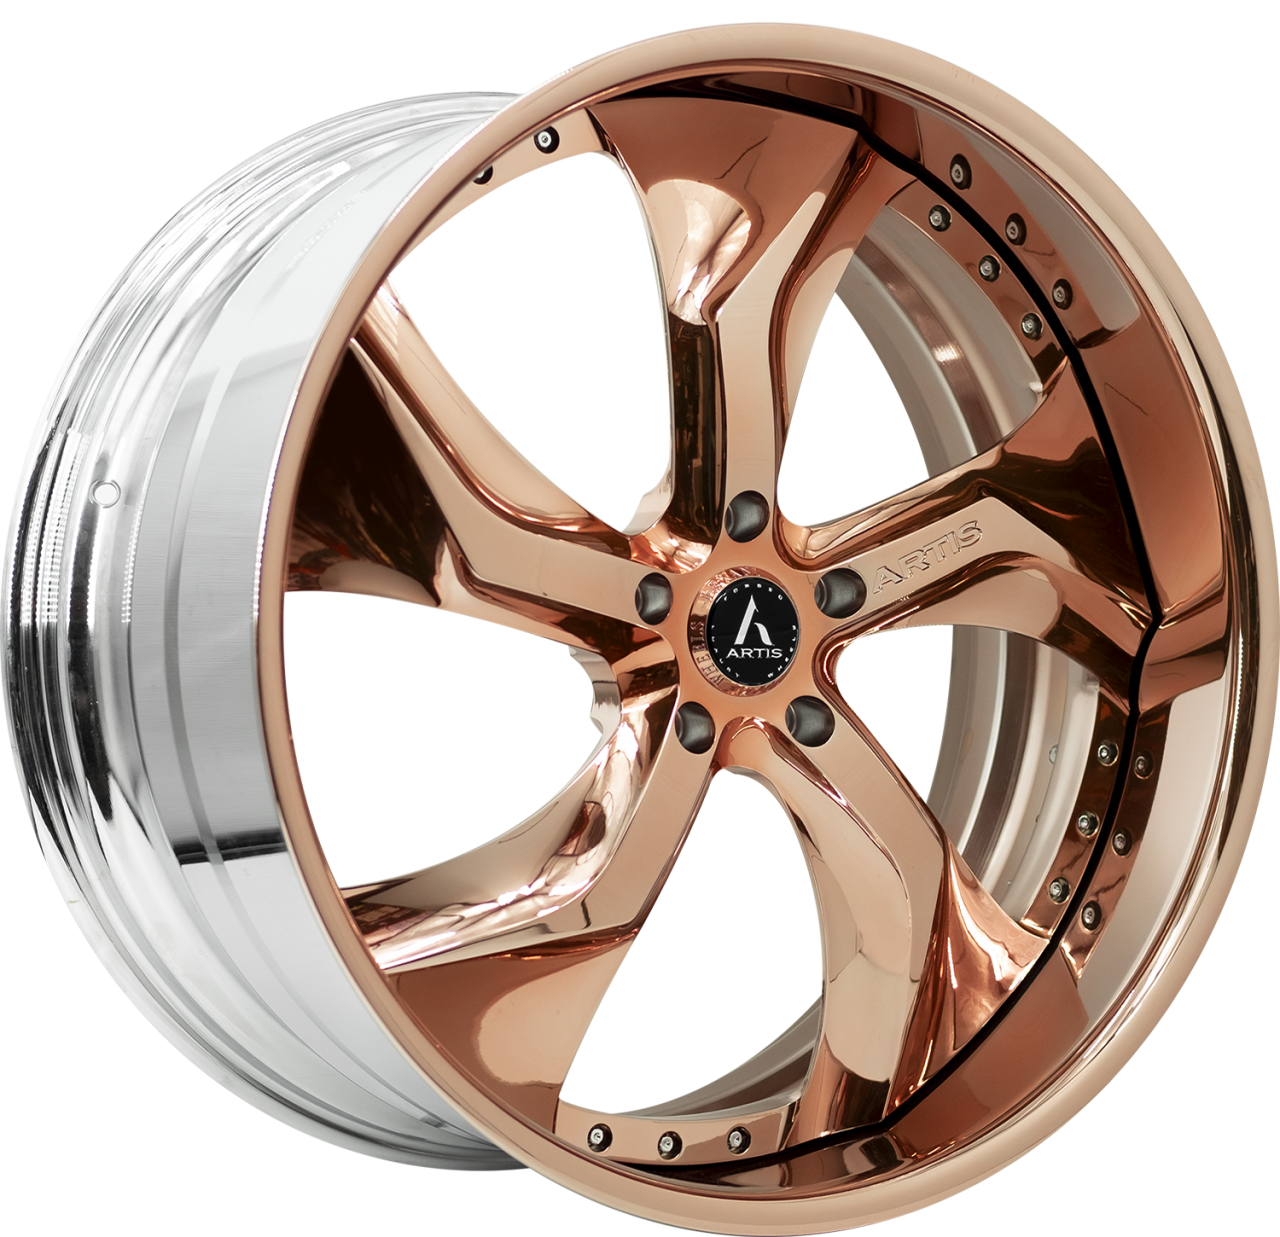 Artis Forged Bully wheel with Custom Rose Gold finish